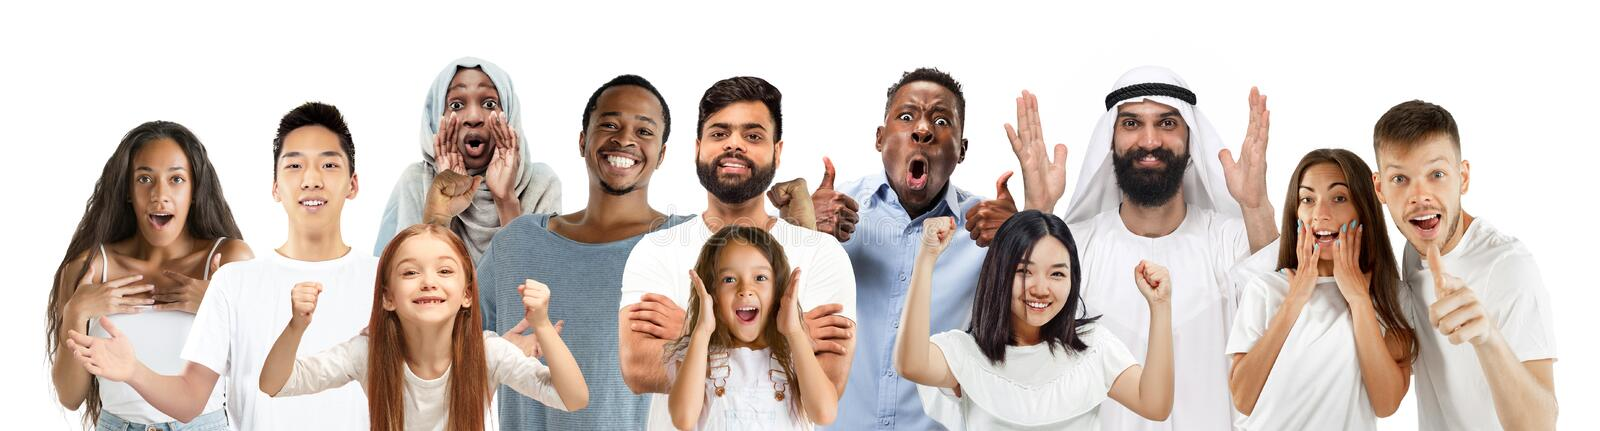 Portrait of young people looks astonished and happy on white background stock image